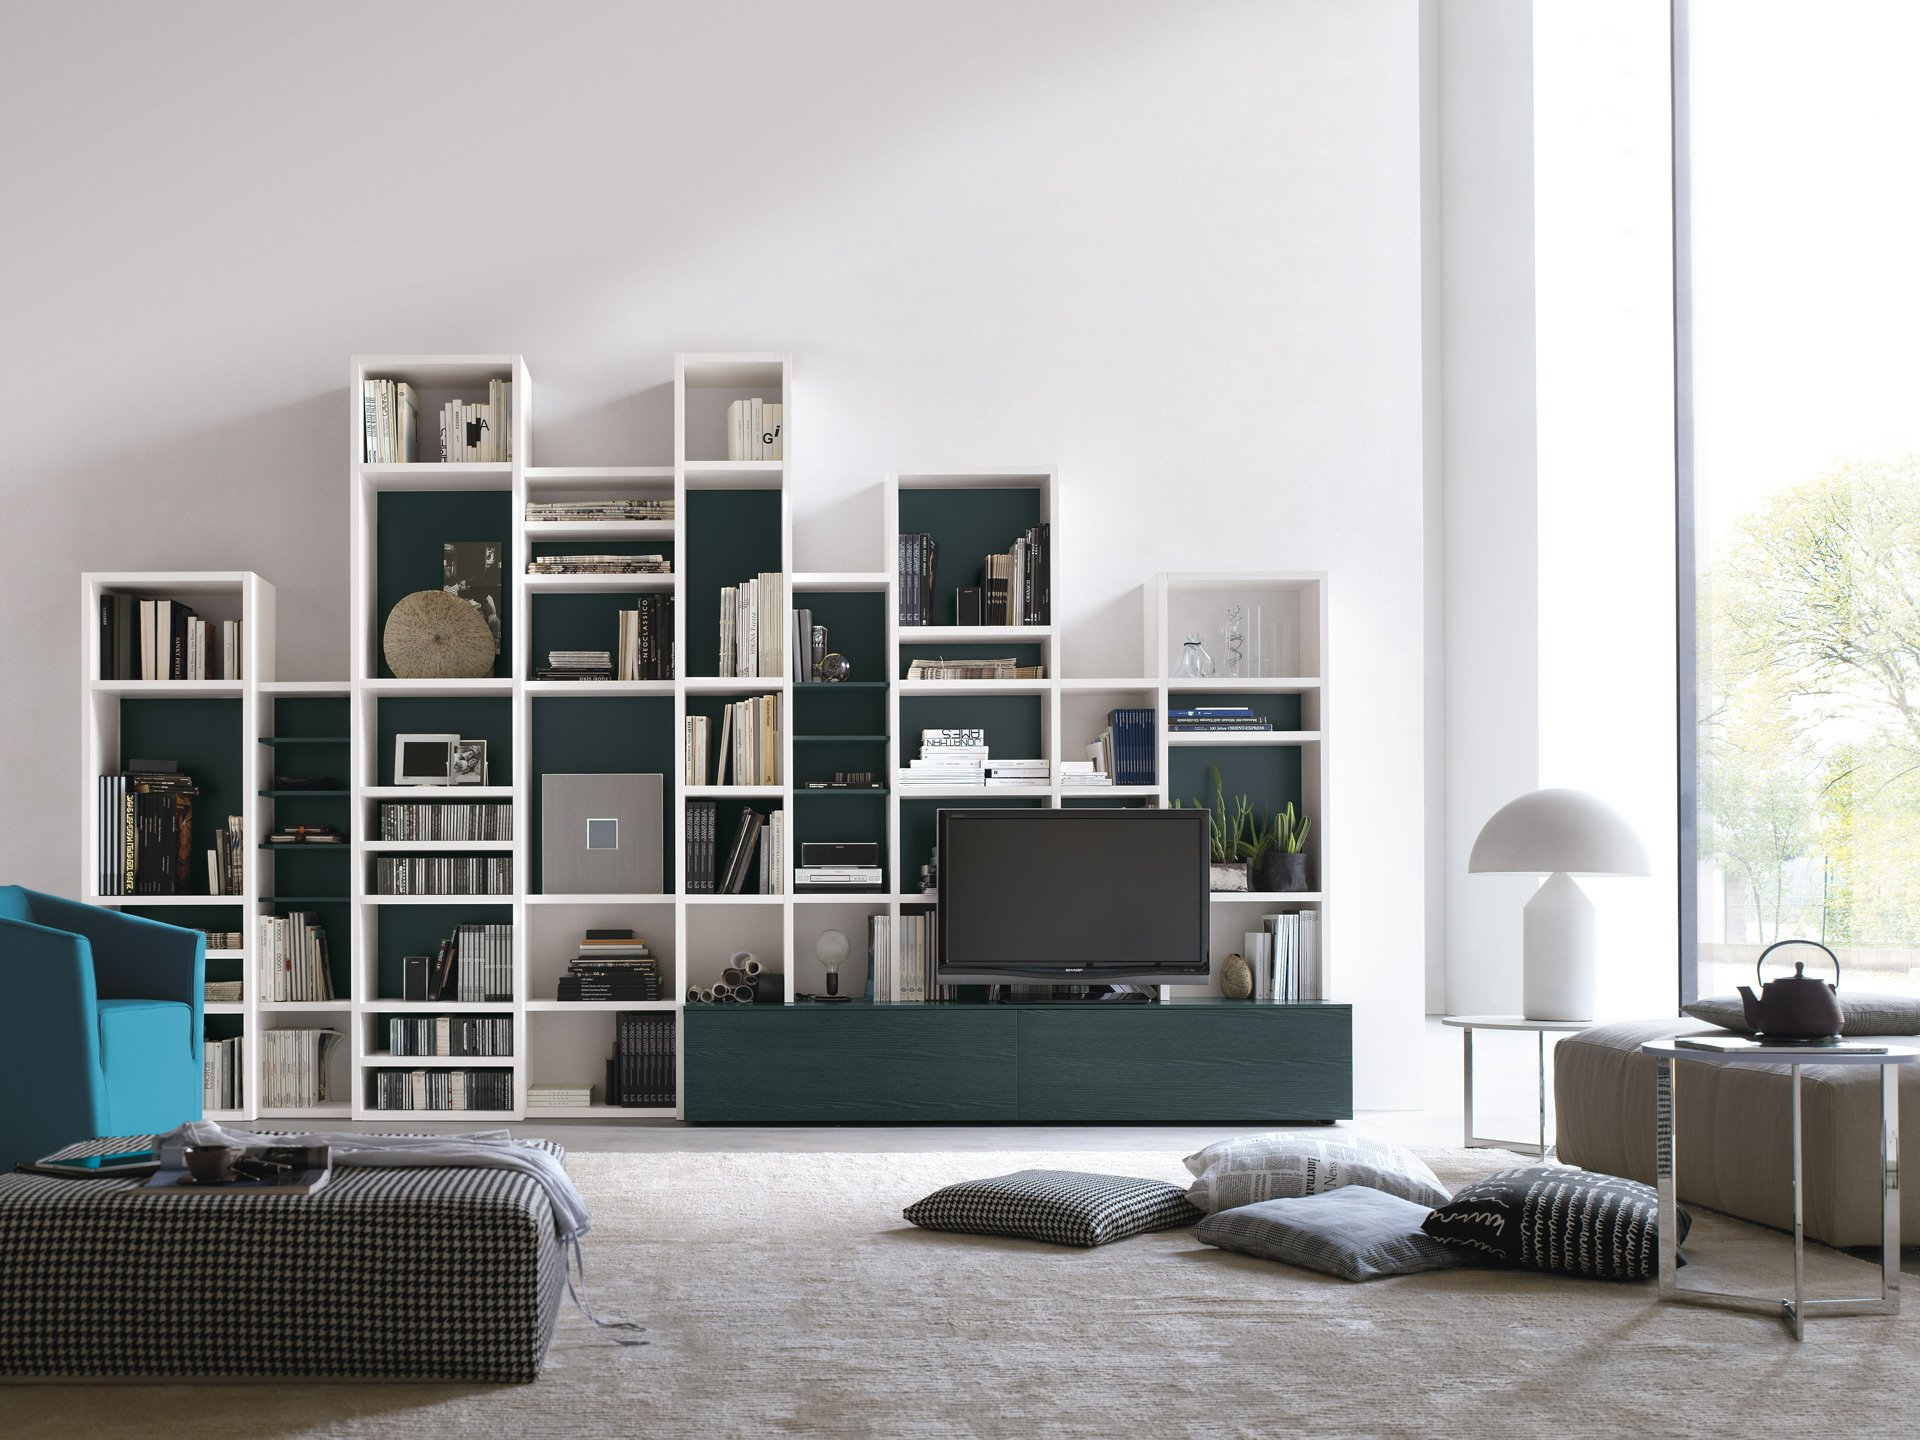 A086 Tomasella Italy Home Living Room